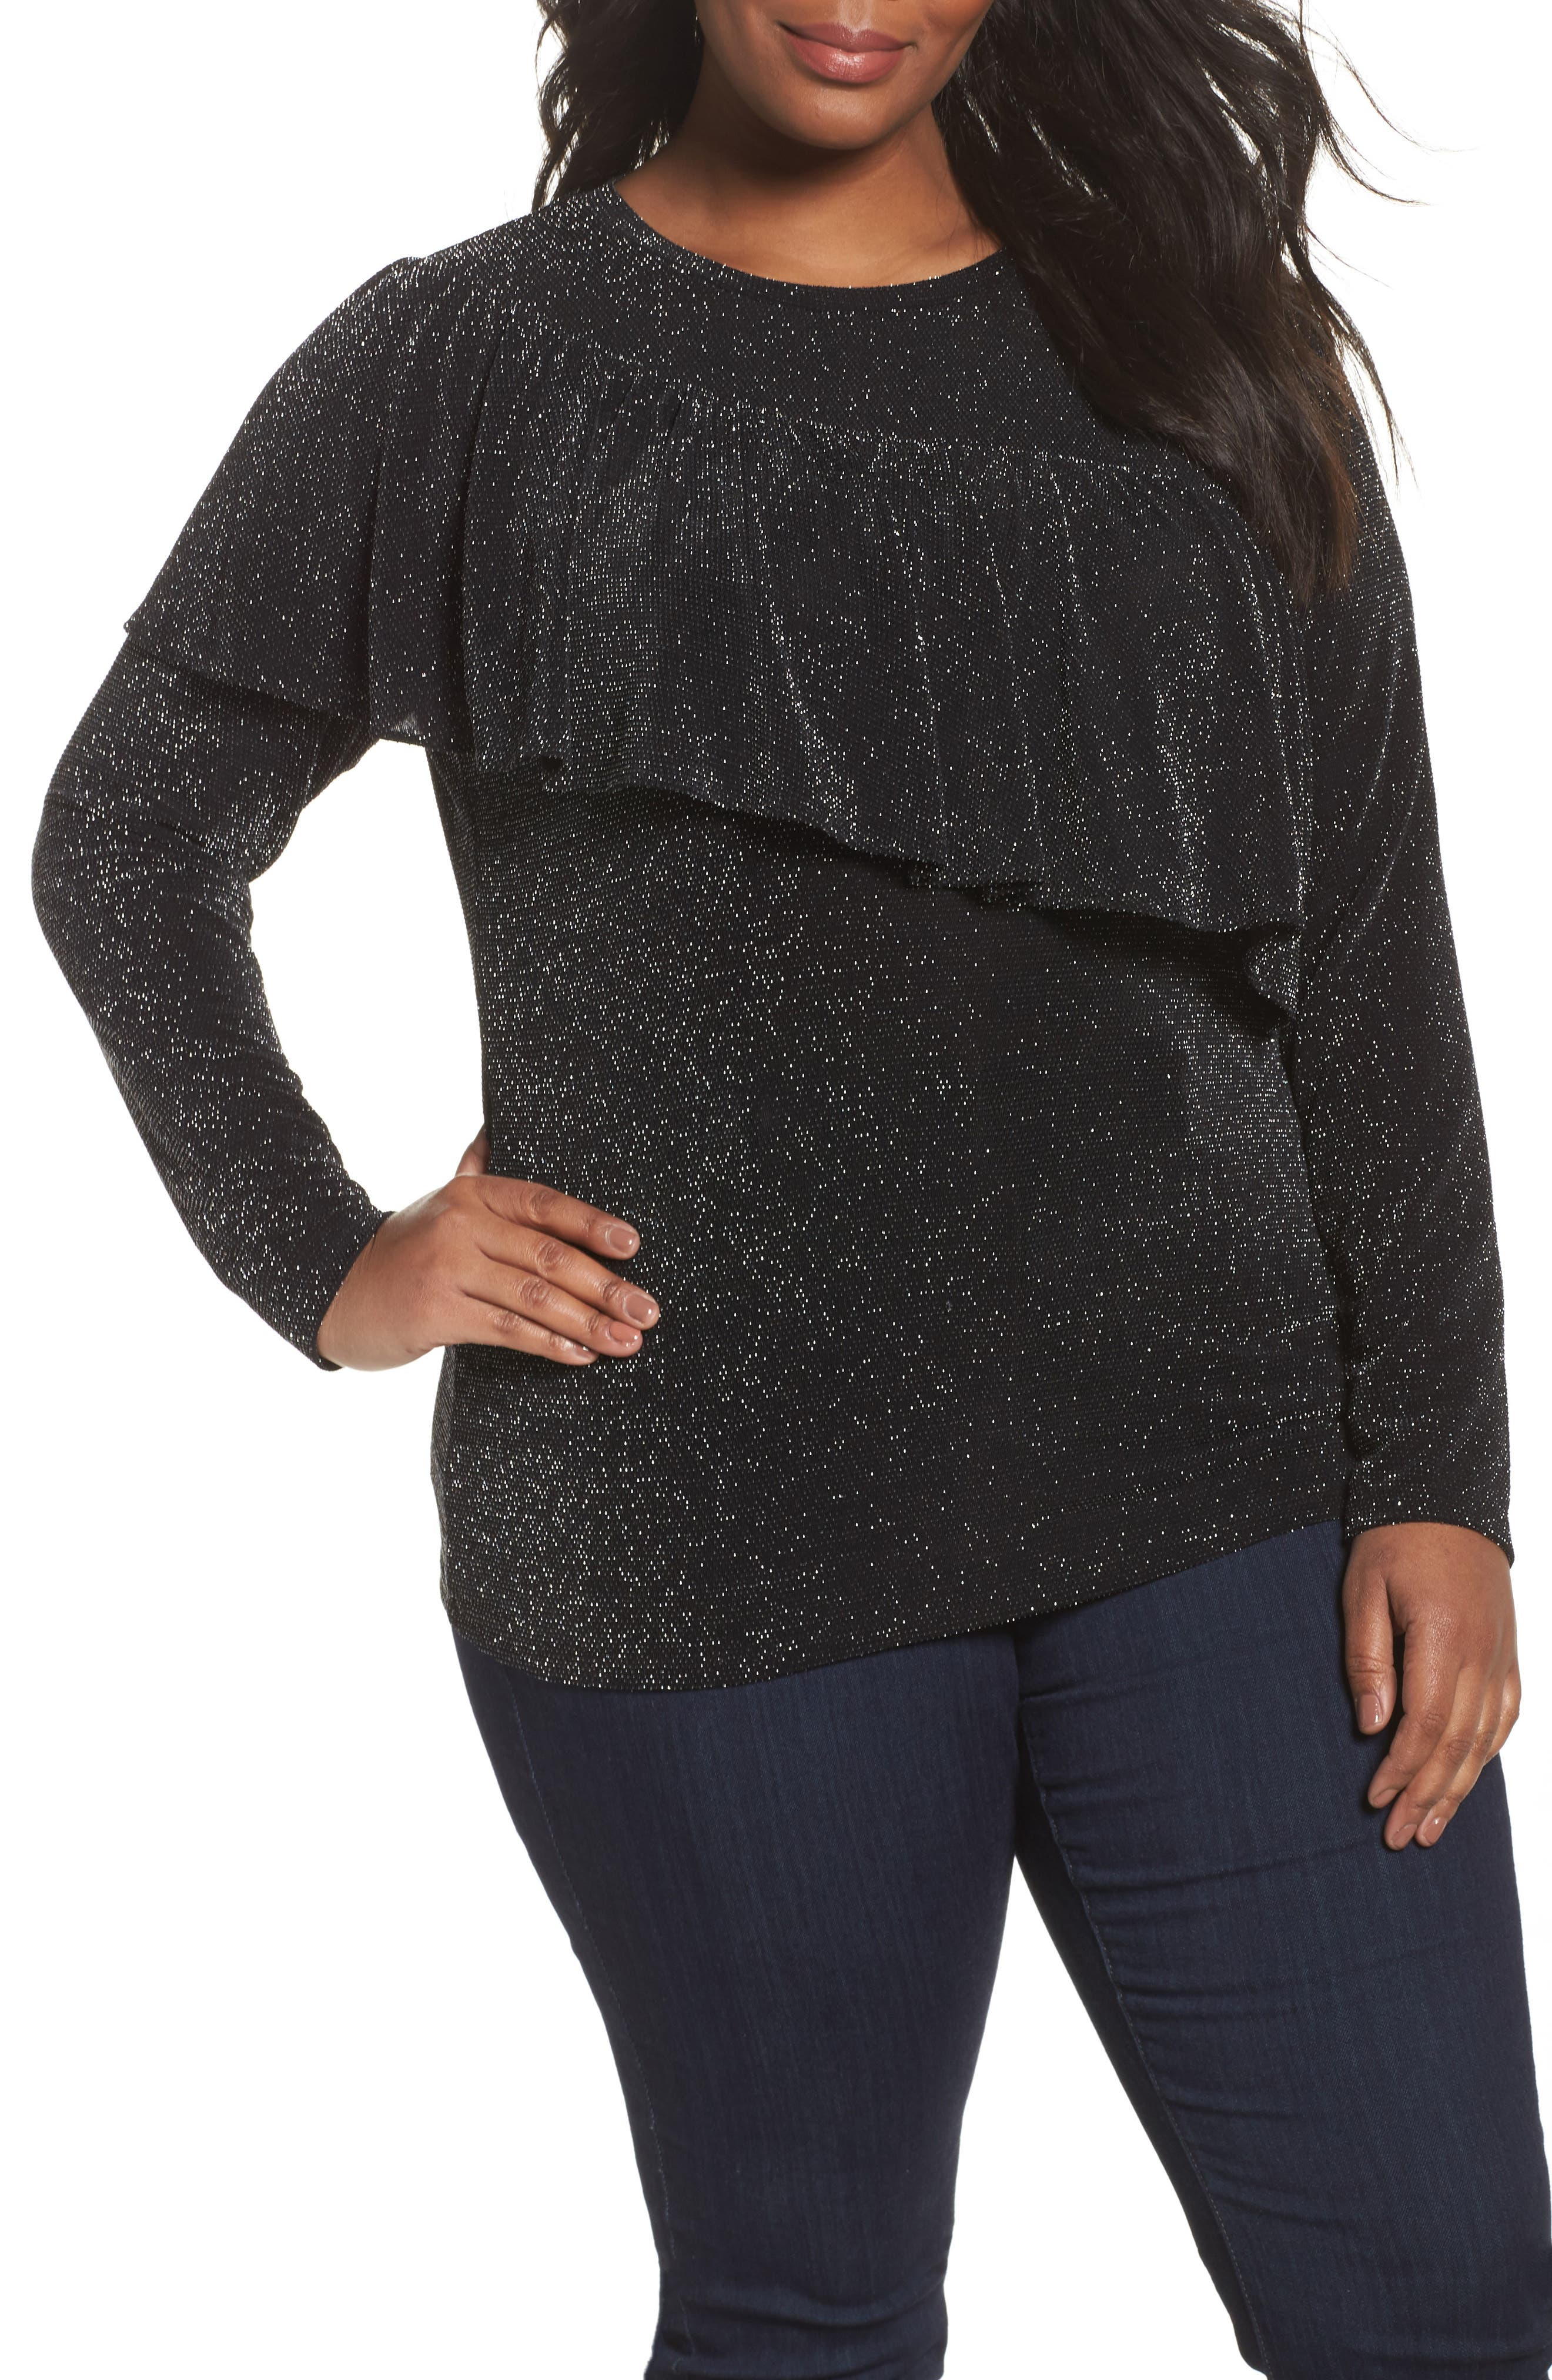 Ruffled Metallic Top,                             Main thumbnail 1, color,                             Black